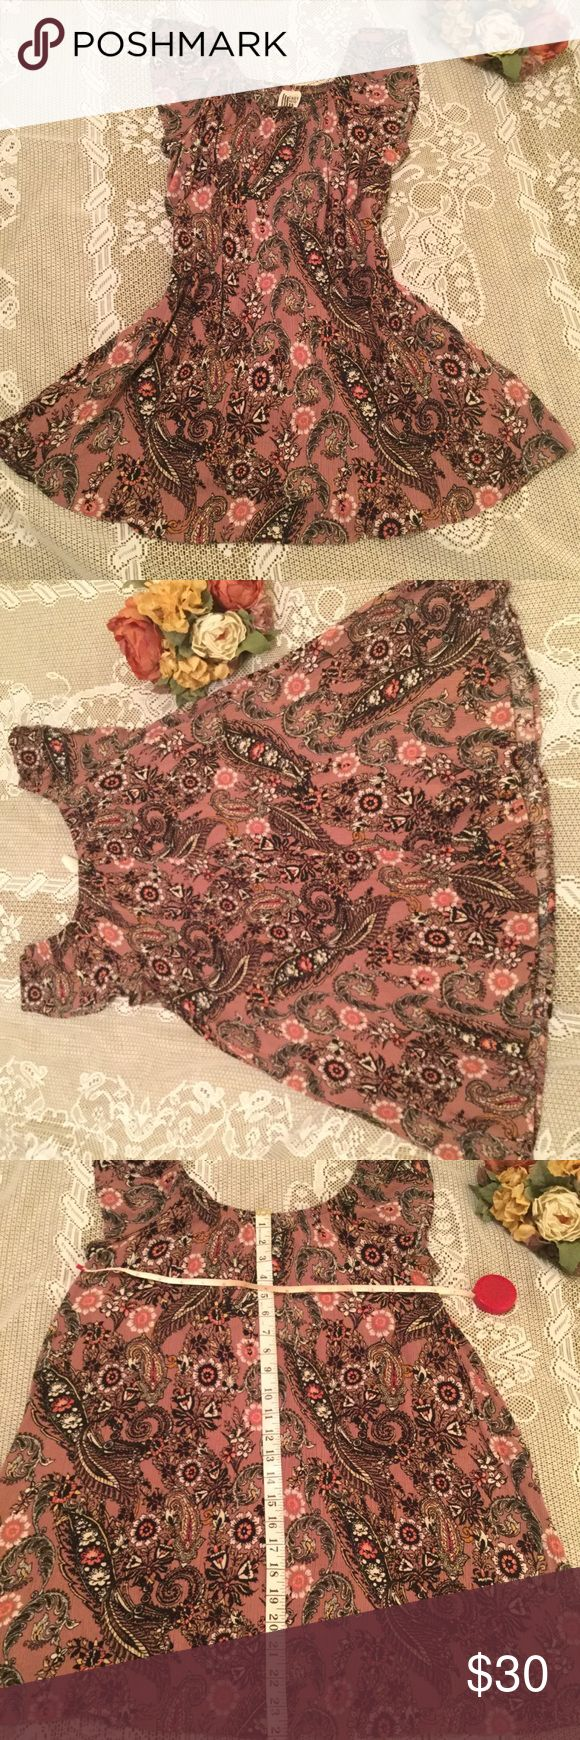 Free People Dress Small Petite Free People Mini Dress Small Petite Free People Dresses Mini